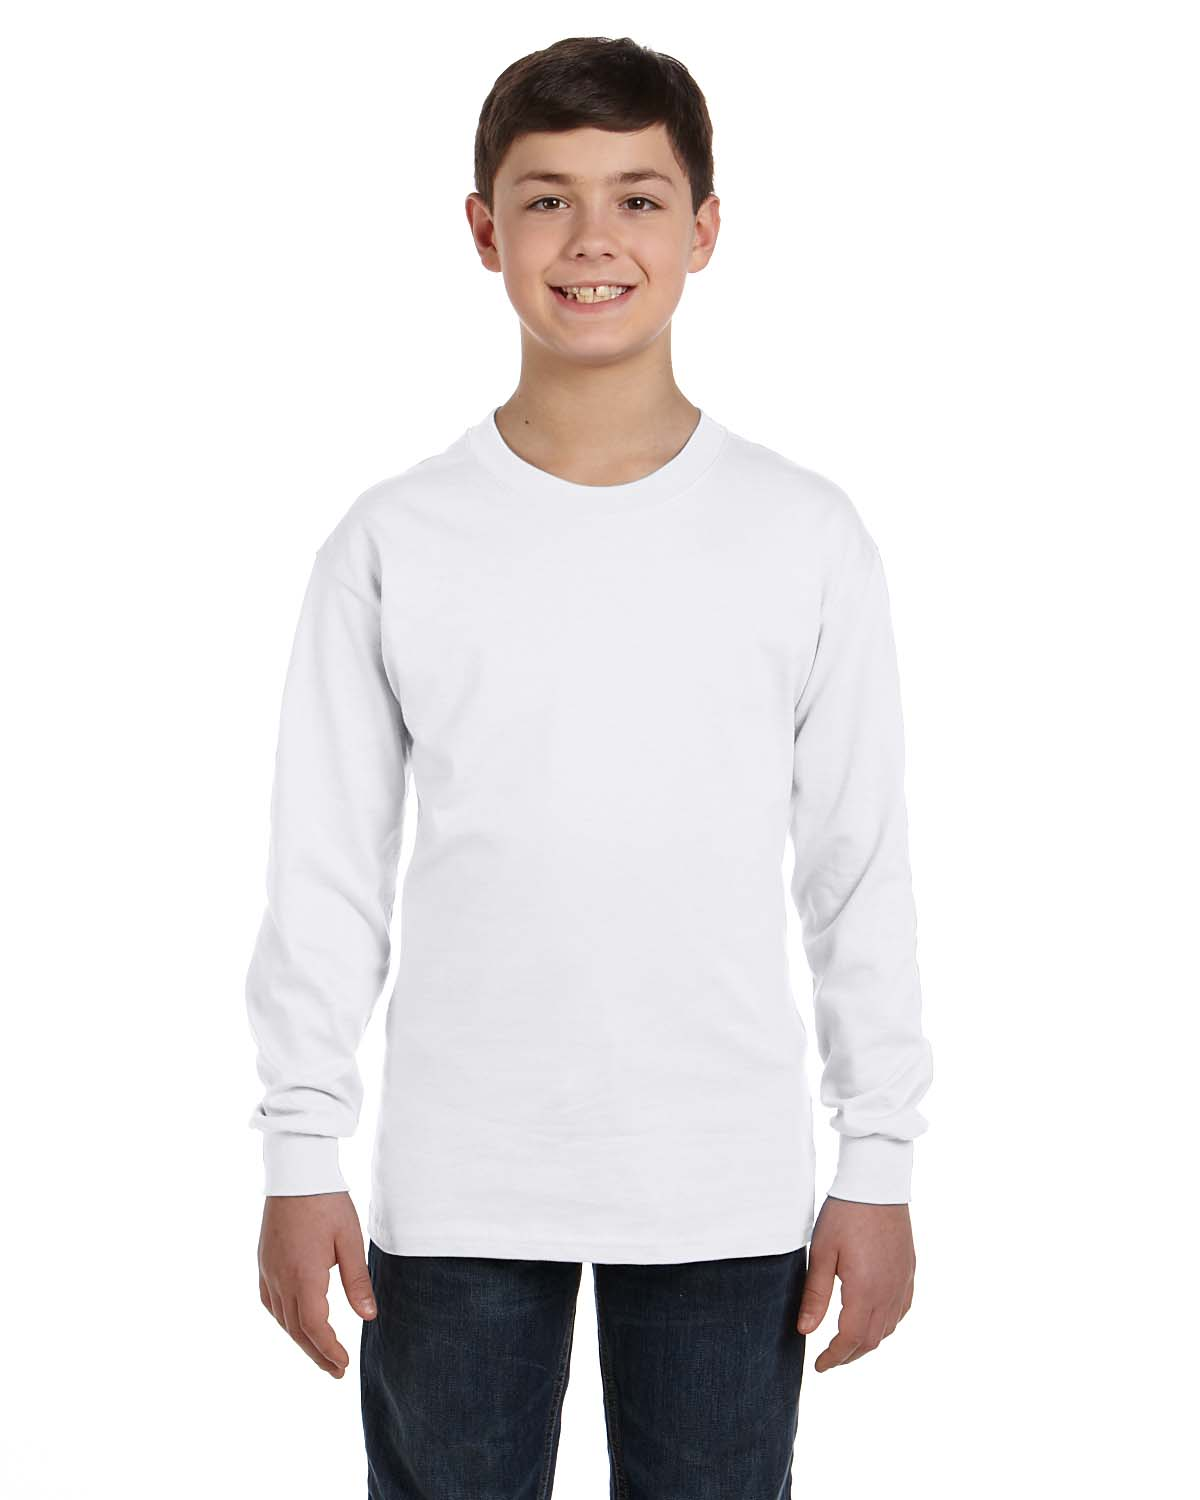 befa8e06 Gildan G540B Youth 5.3 oz. Long Sleeve T-Shirt - Shirtmax